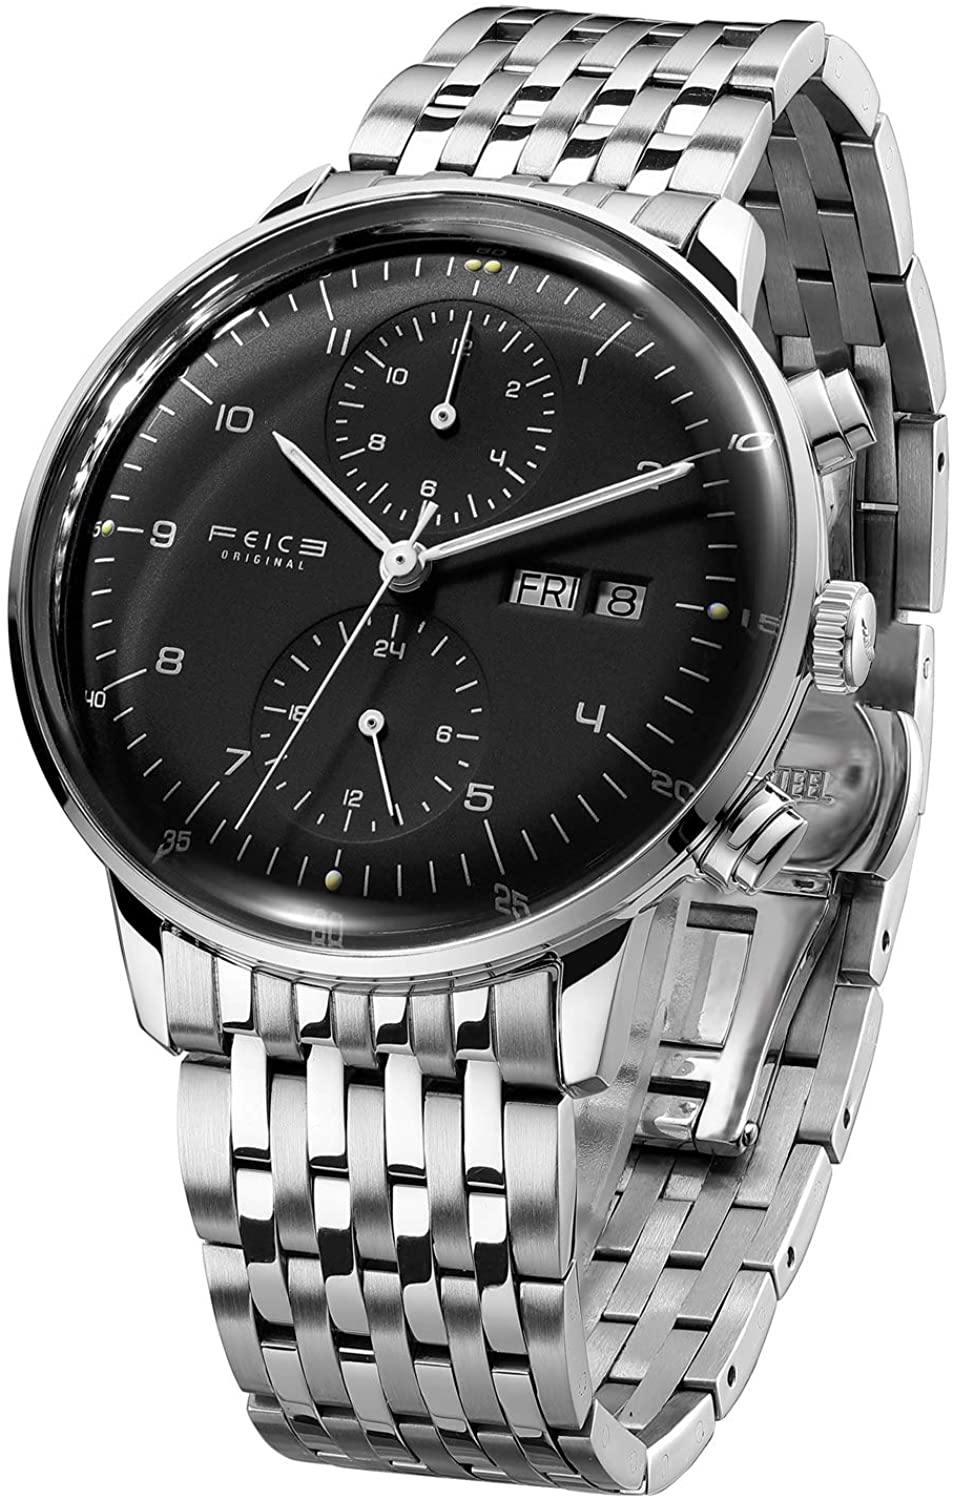 FEICE Men's Watches Bauhaus Automatic Watch Stainless Steel Mechanical Watch Wristwatch Casual Dress Watches for Men with Leather Bands Date -FM121